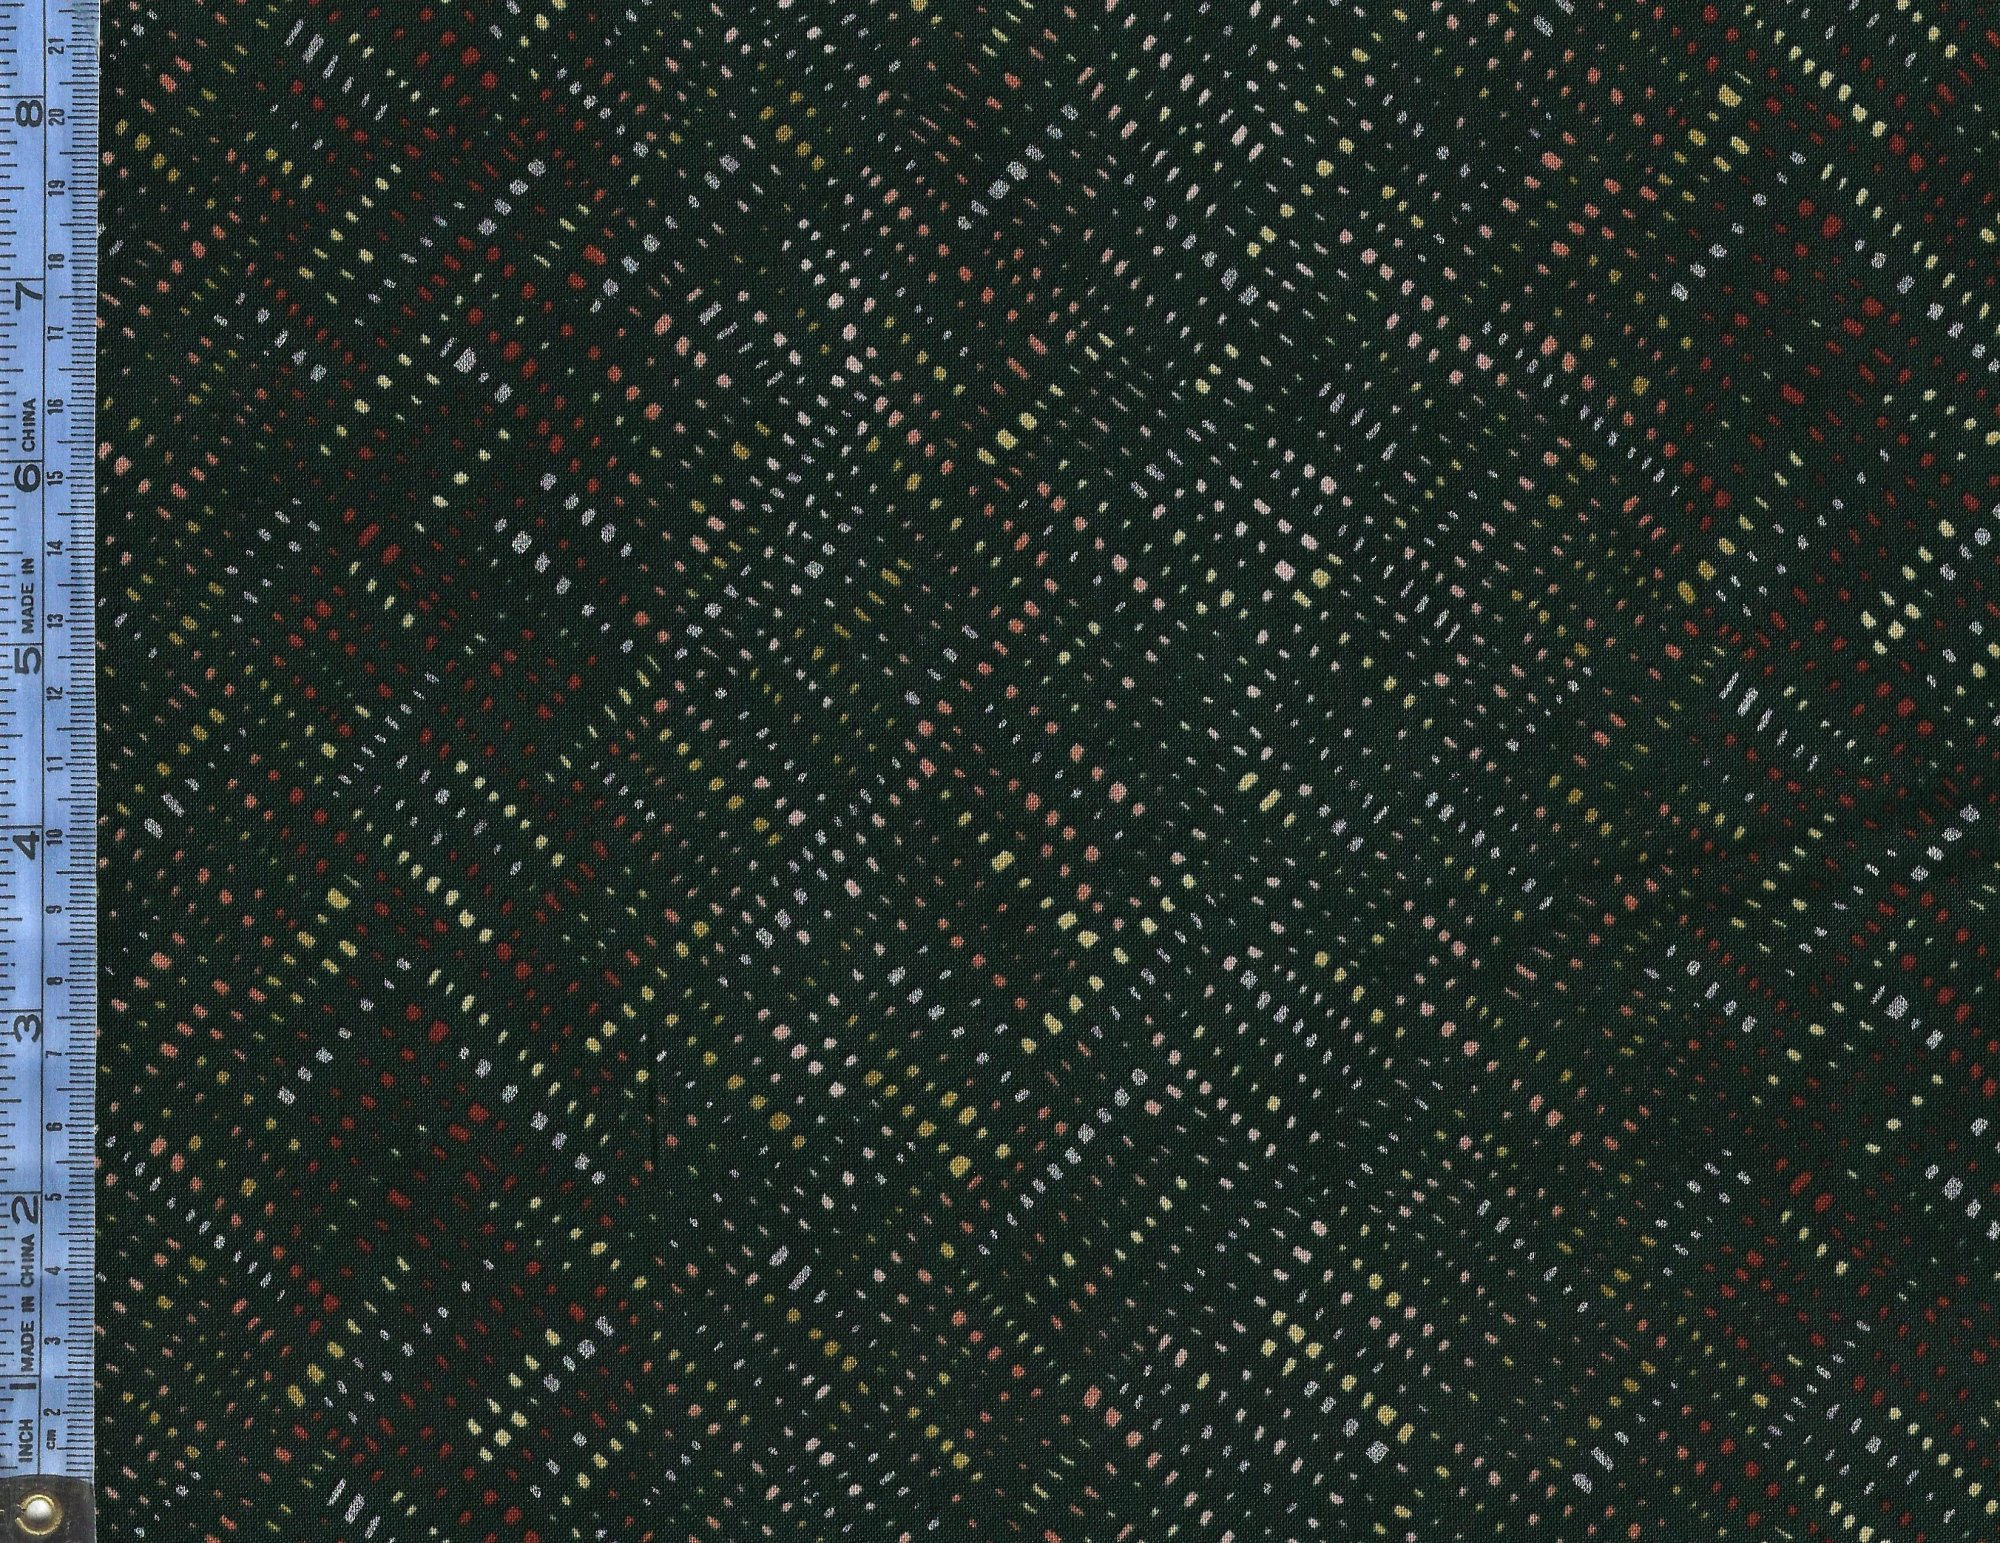 Shiny Objects - (3026-1) metallic silver, maroon, beige, green, and white compact spots on dark forest green background